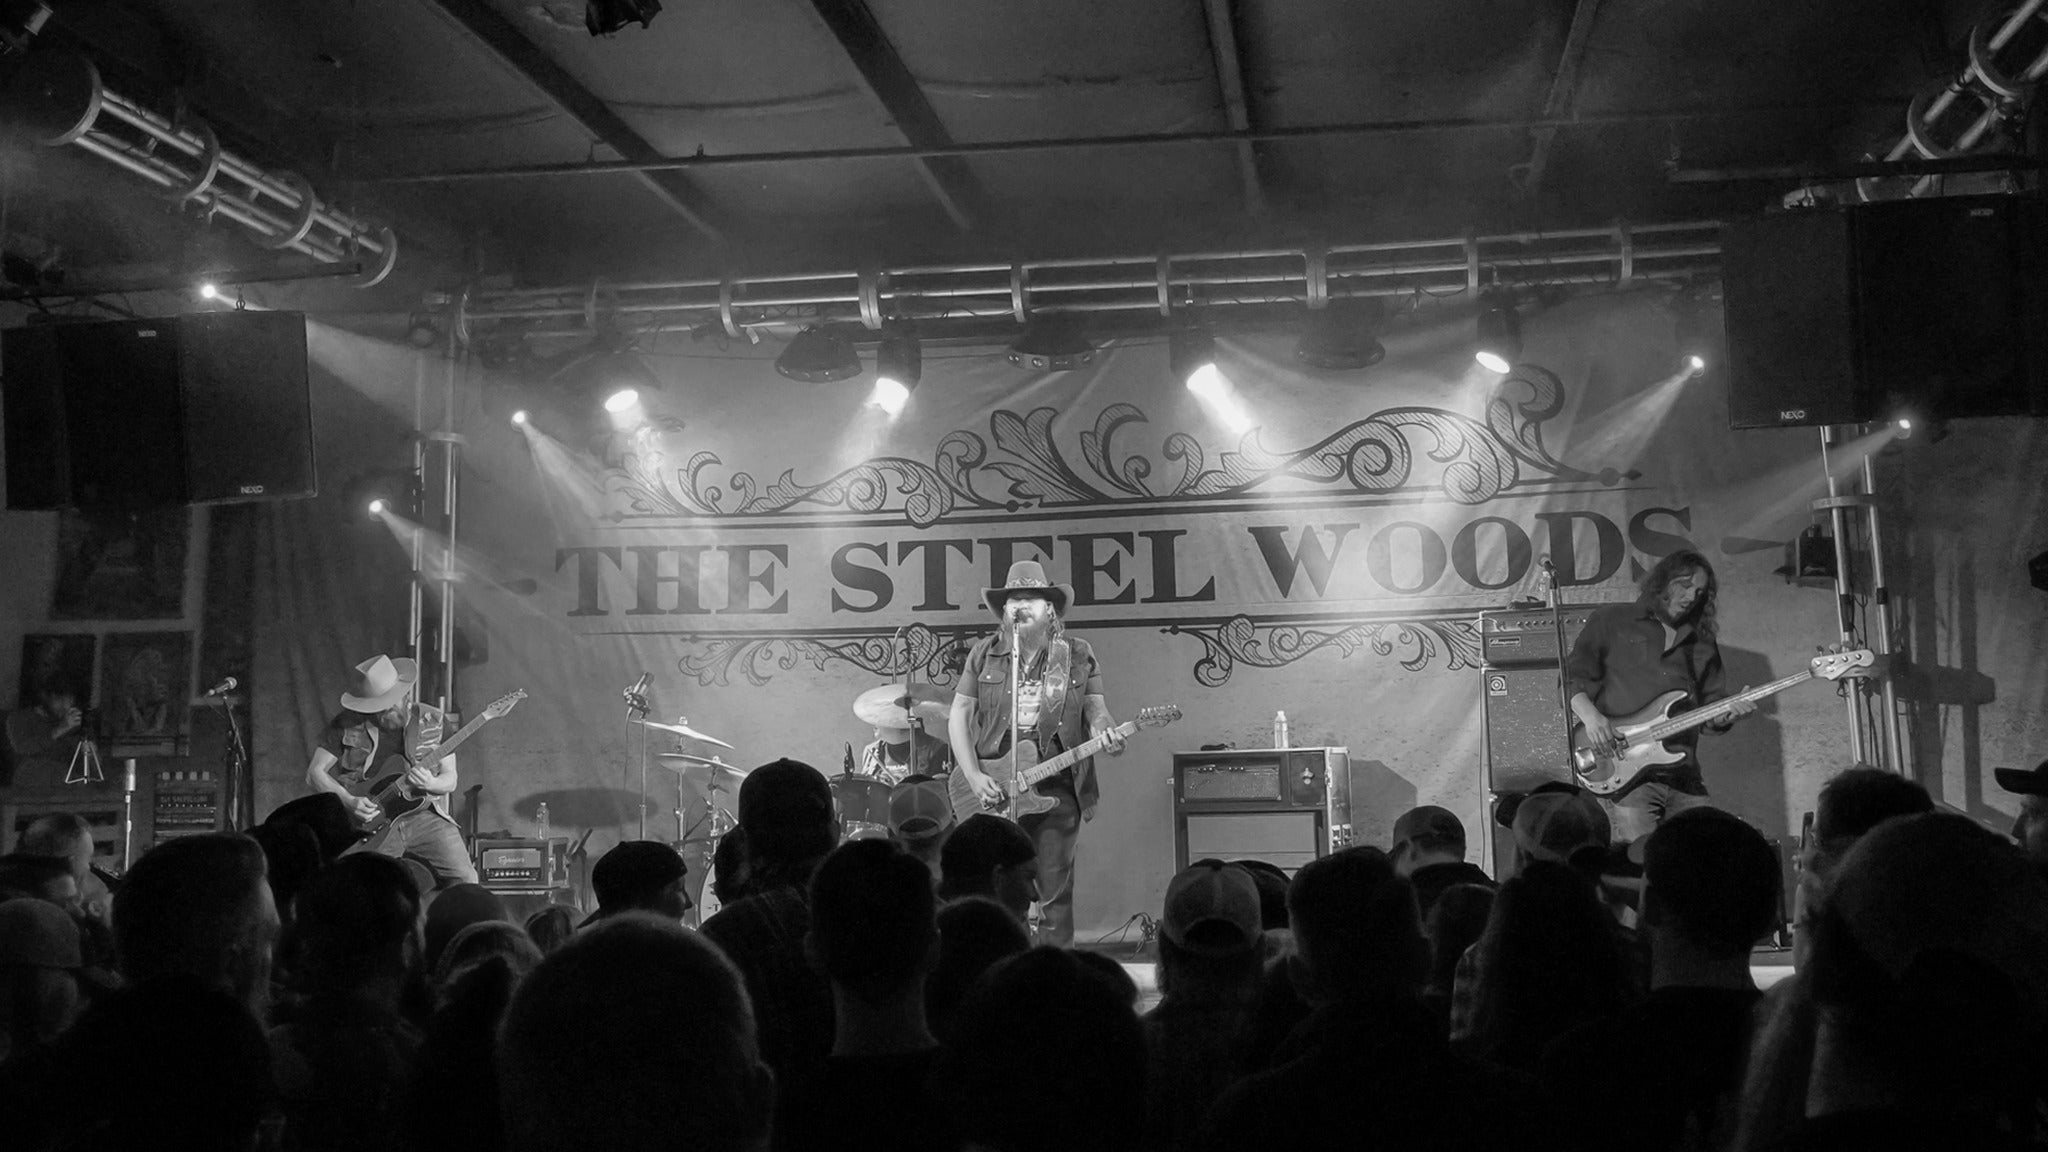 The Steel Woods at 3rd and Lindsley